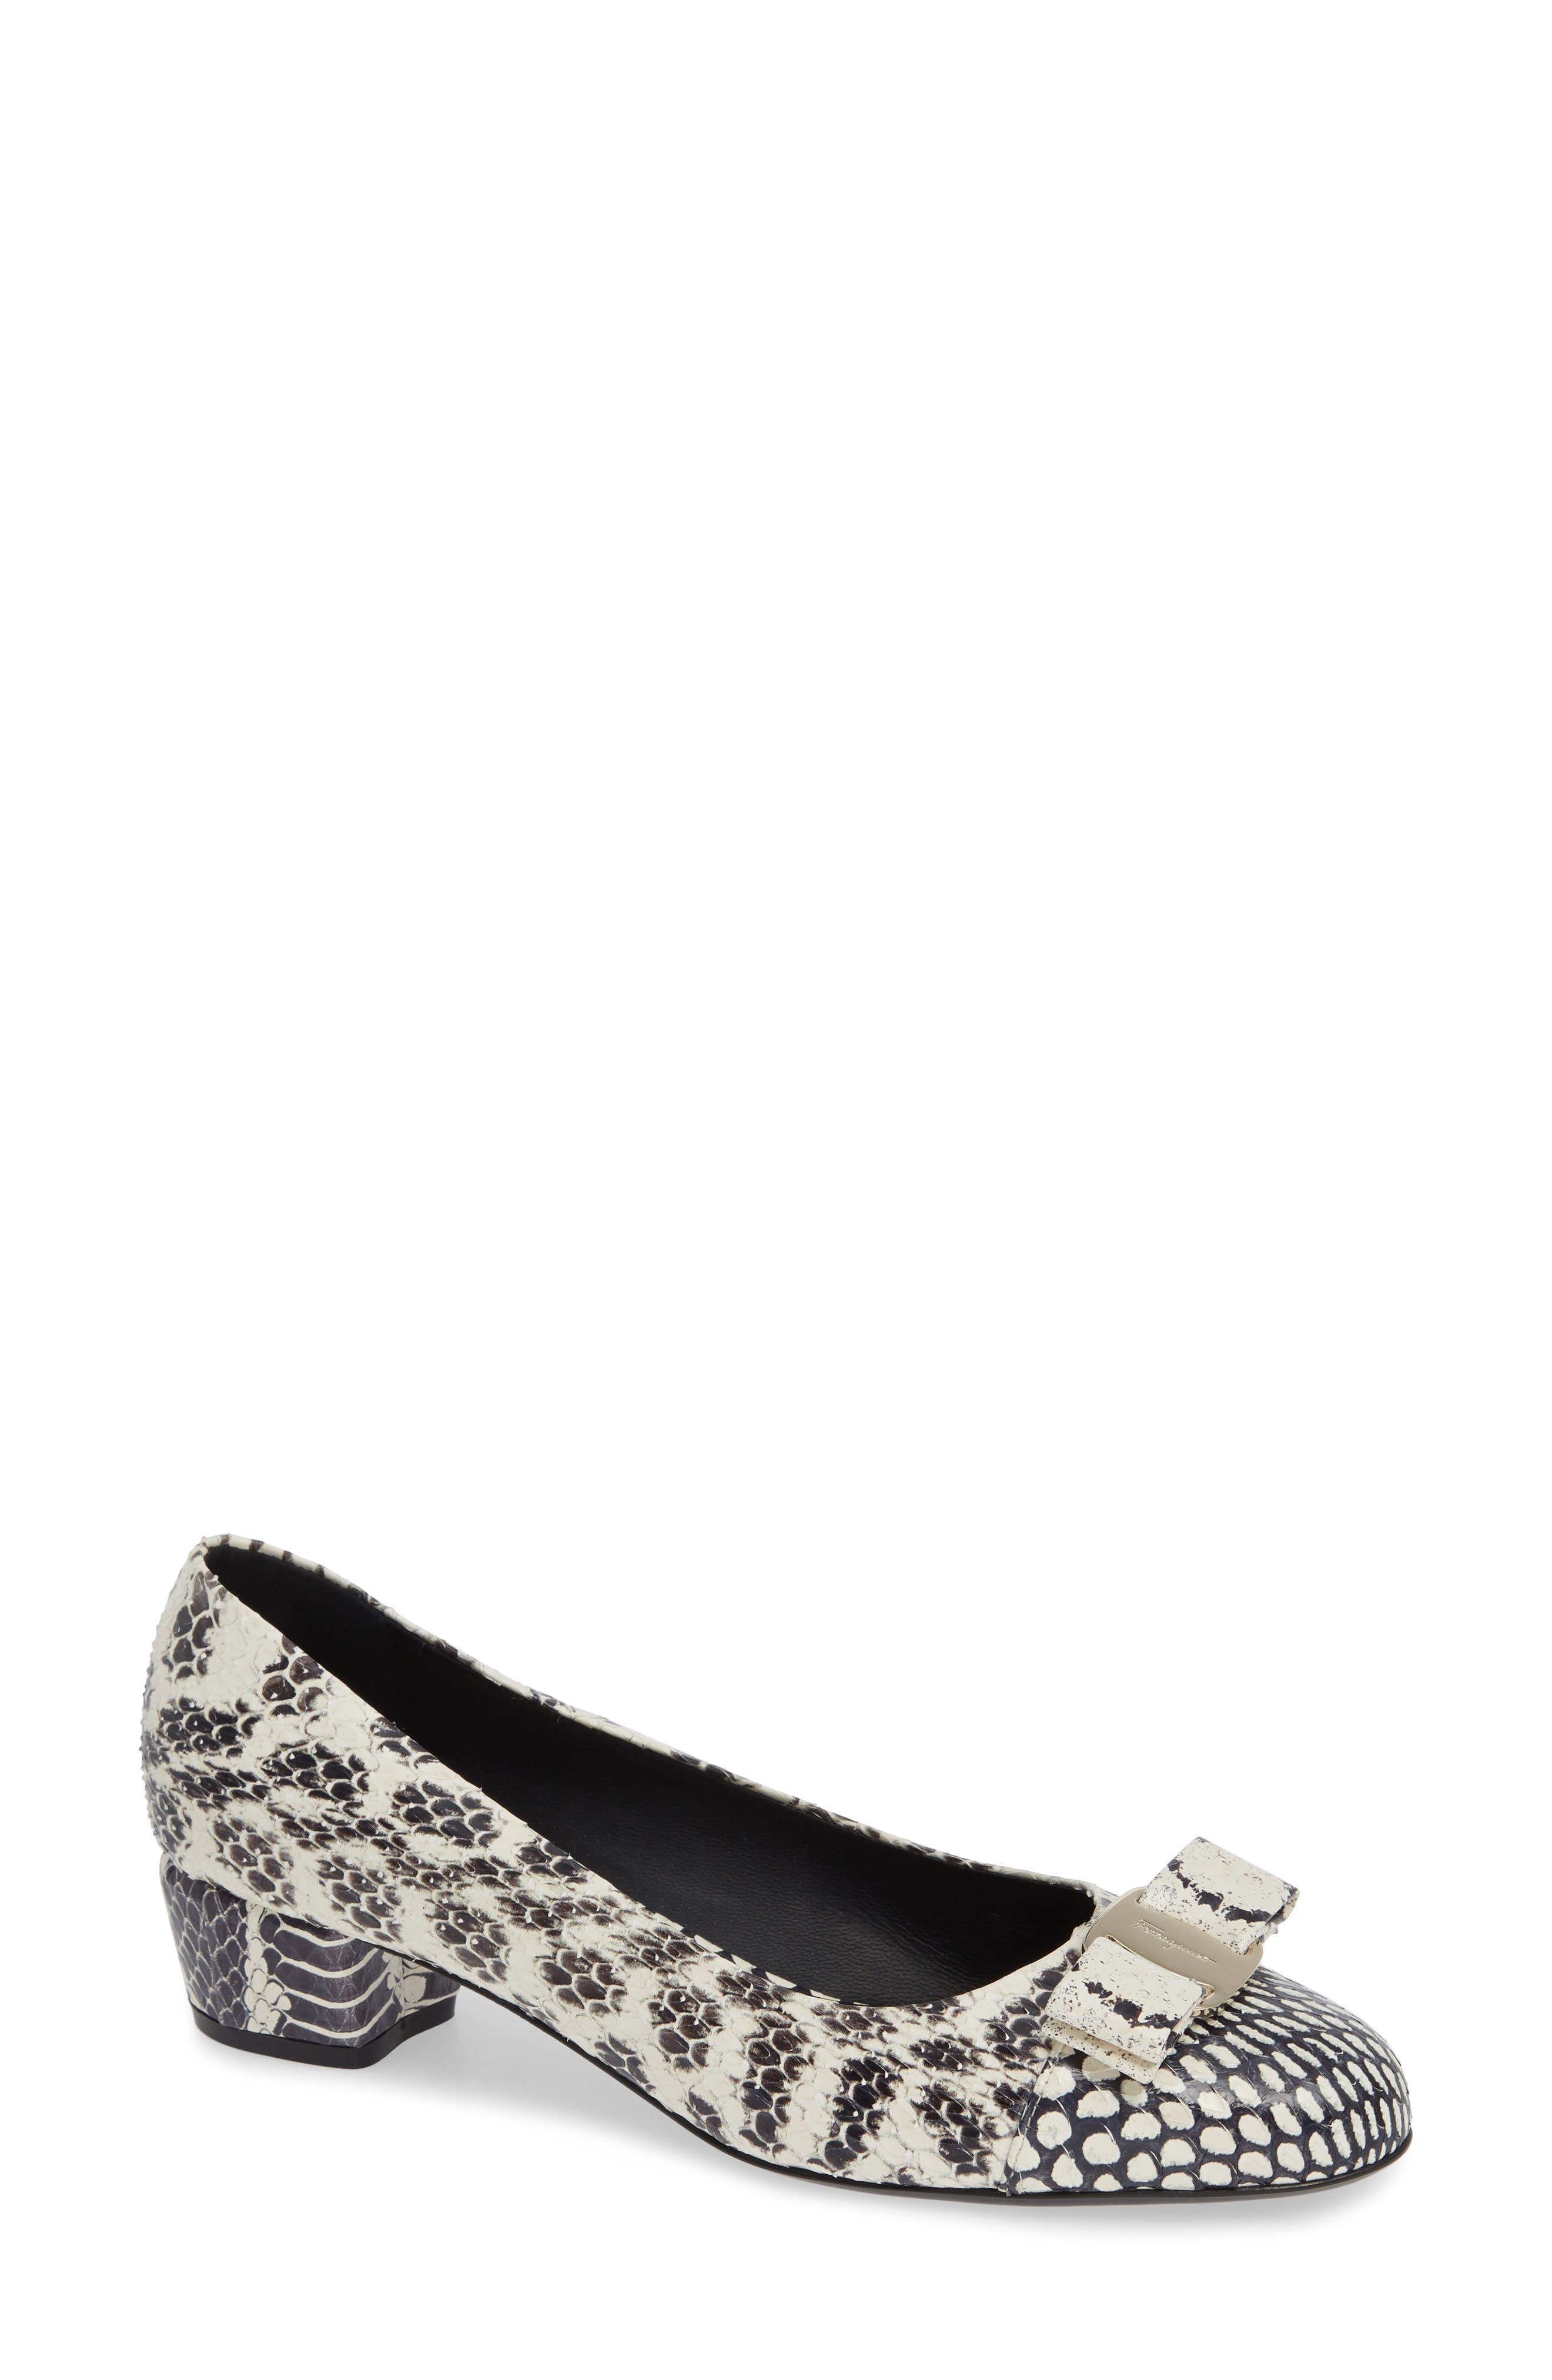 Salvatore Ferragamo Vara Snake Embossed Bow Pump, White